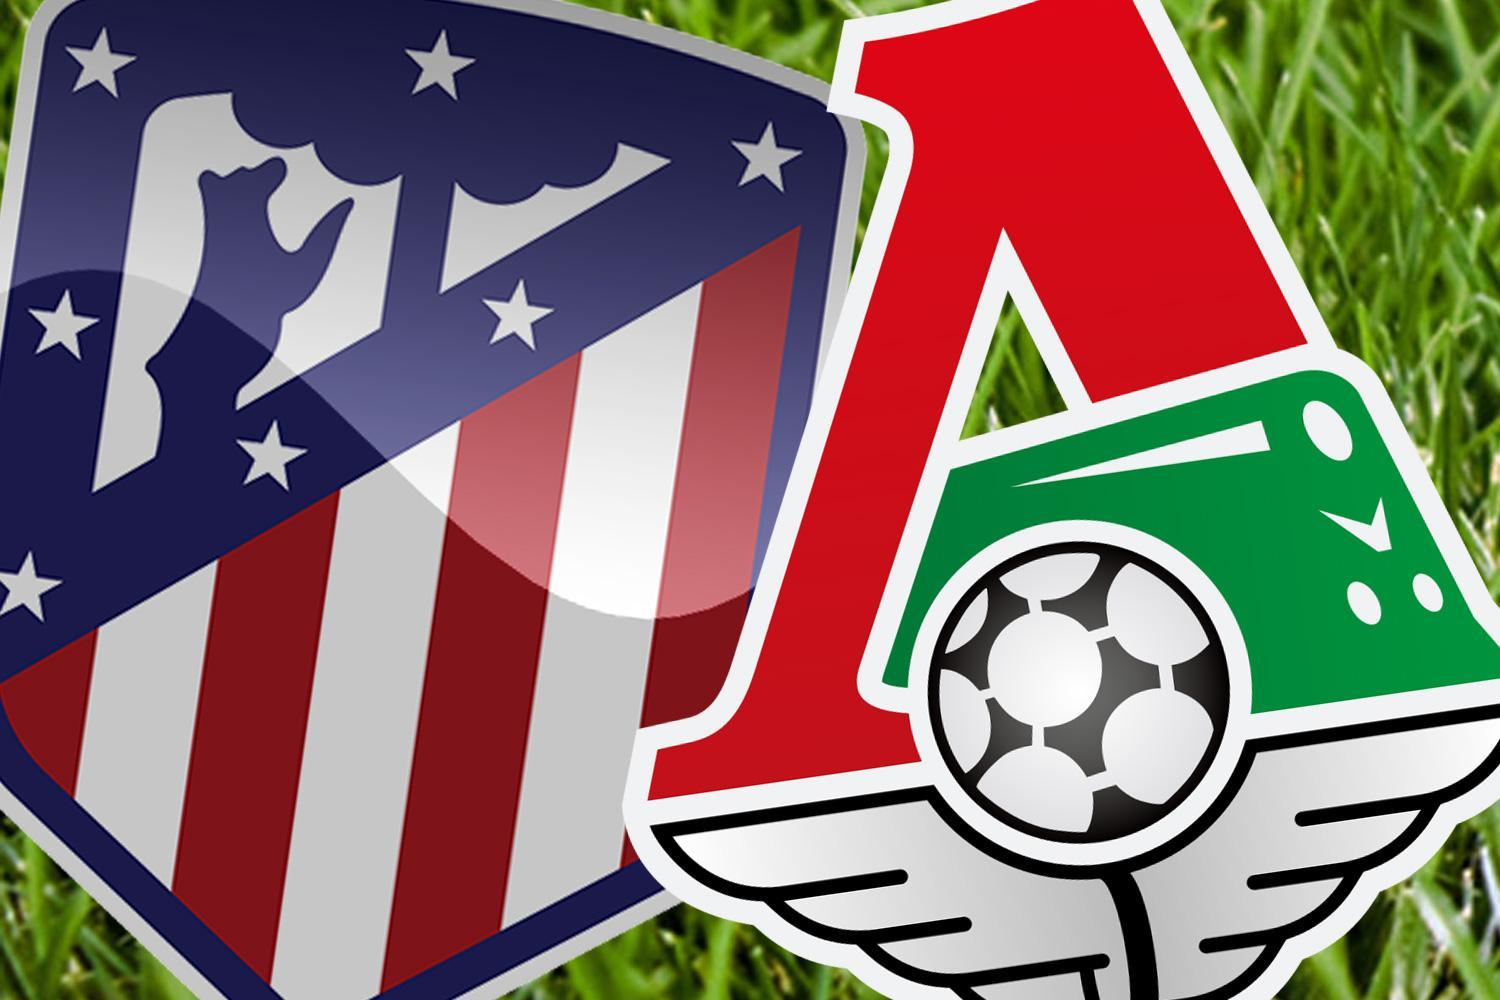 Atletico Madrid vs Lokomotiv Moscow LIVE SCORE: Latest updates from Europa League clash